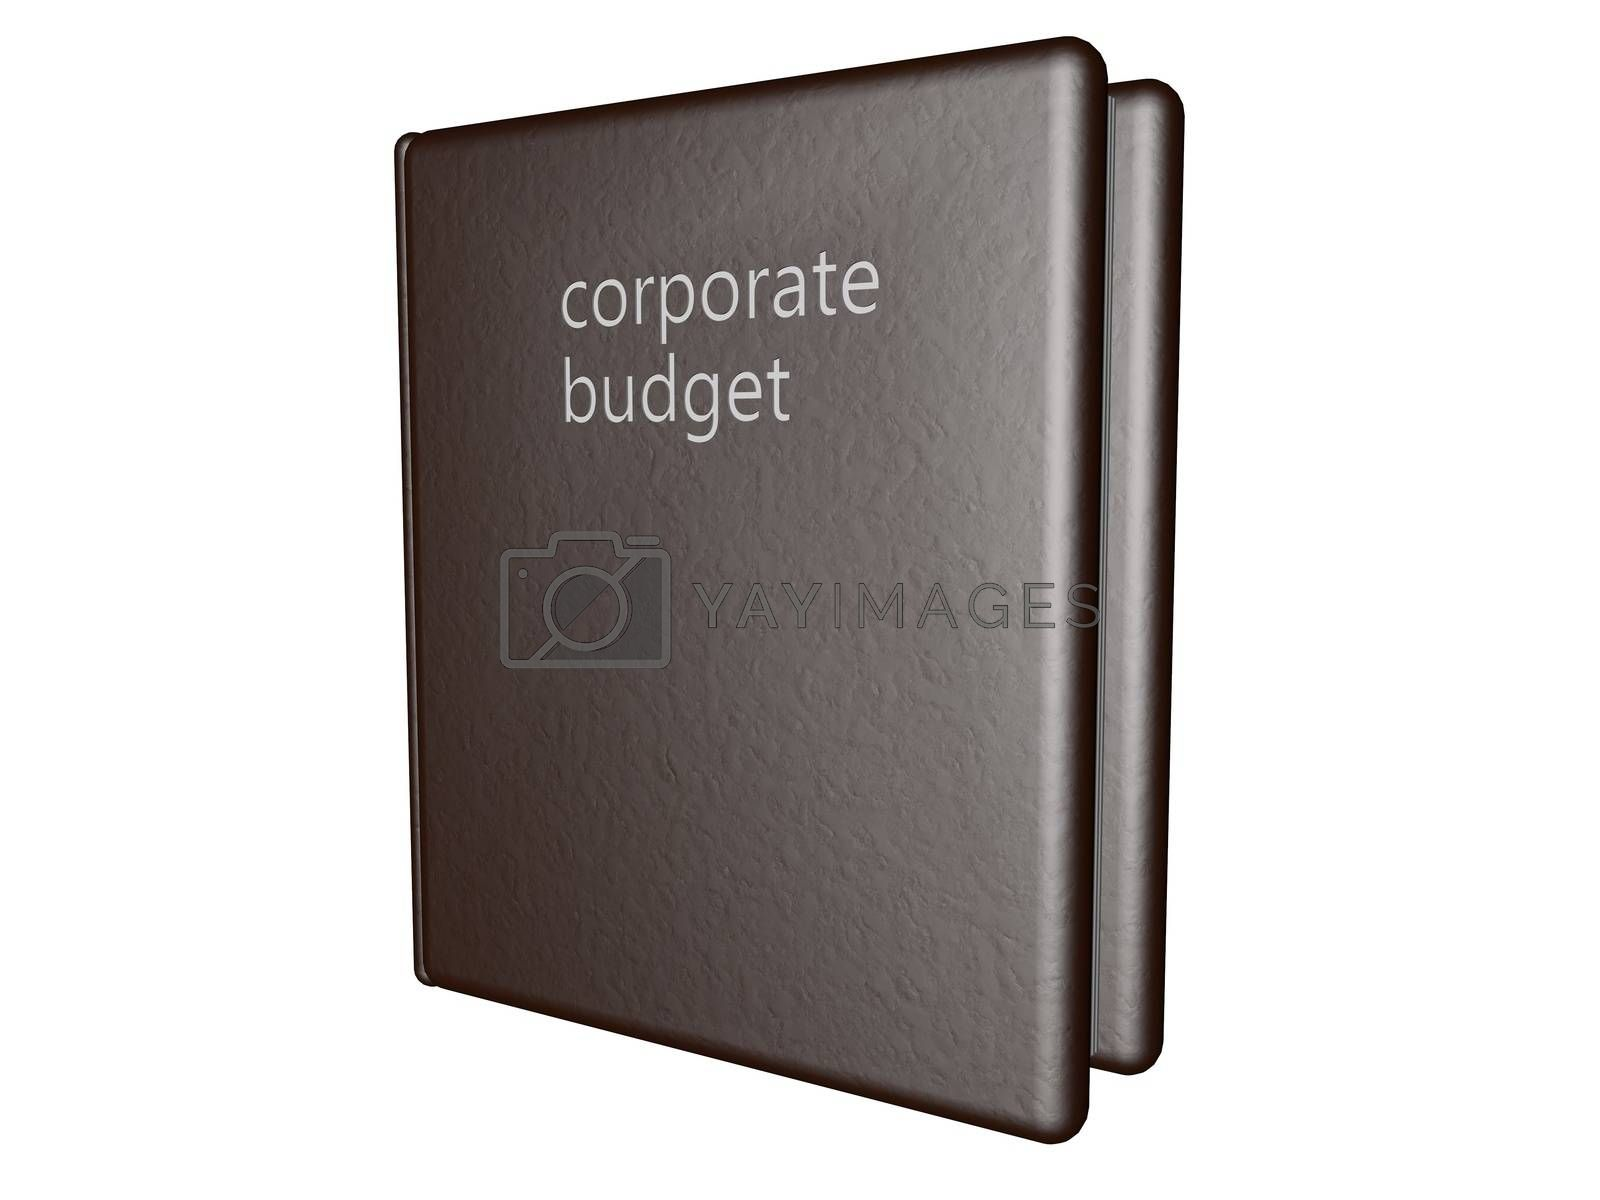 Royalty free image of Corporate budget by Koufax73